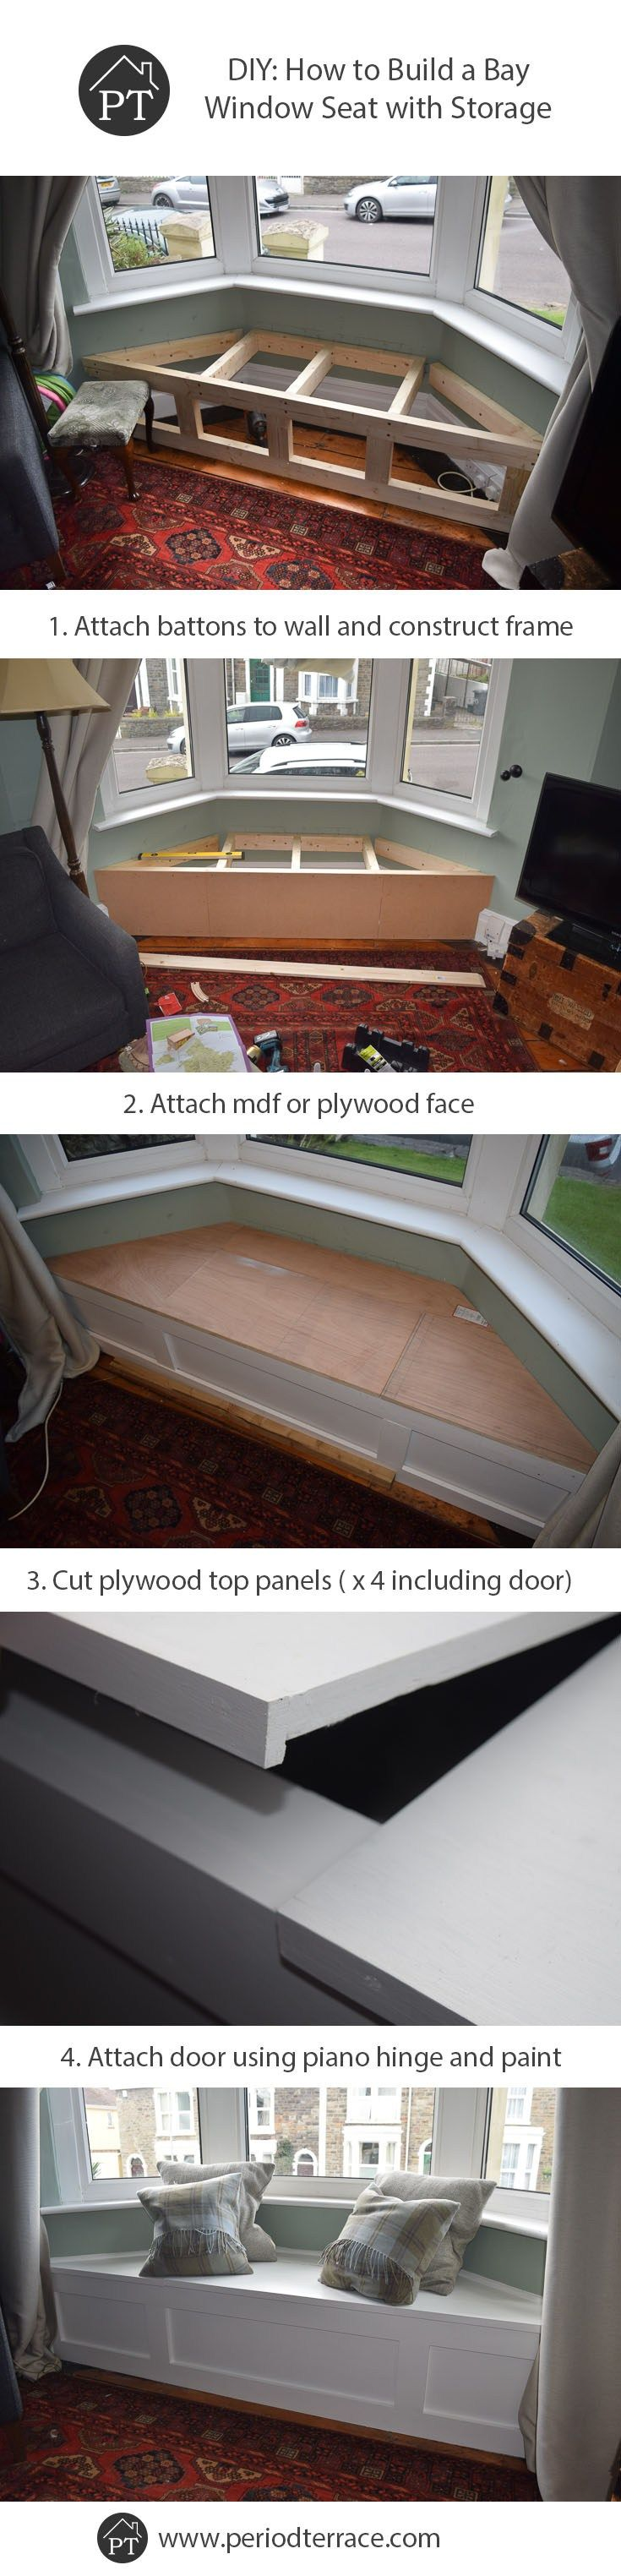 best 25 bay window decor ideas on pinterest bay windows bay how to build a victorian bay window seat with storage